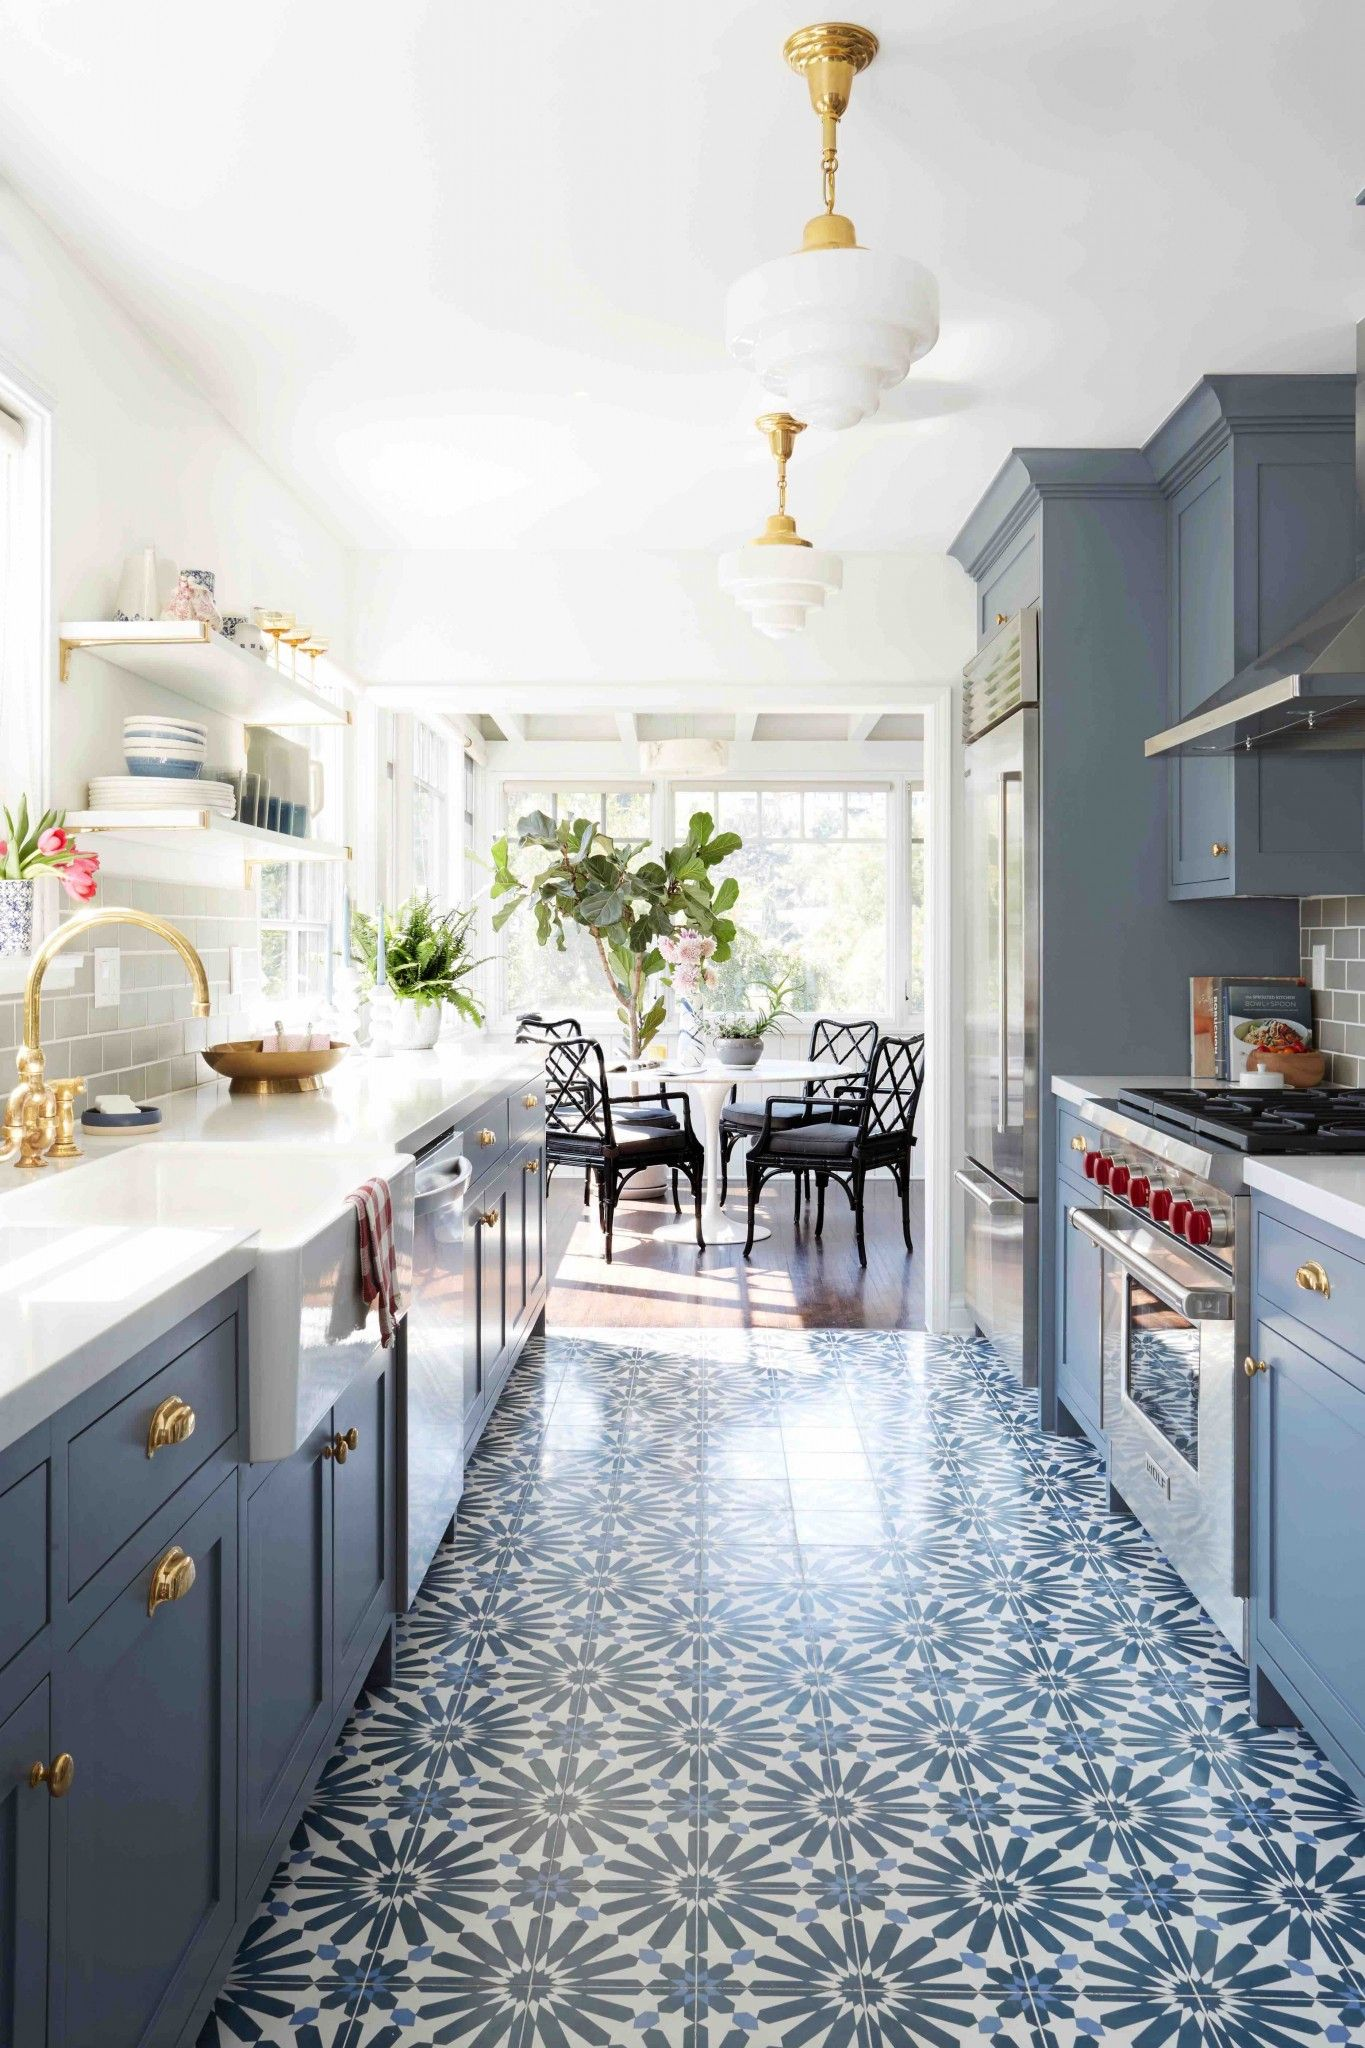 Image Result For Spanish Floor Tiles Kitchen Remodel Small